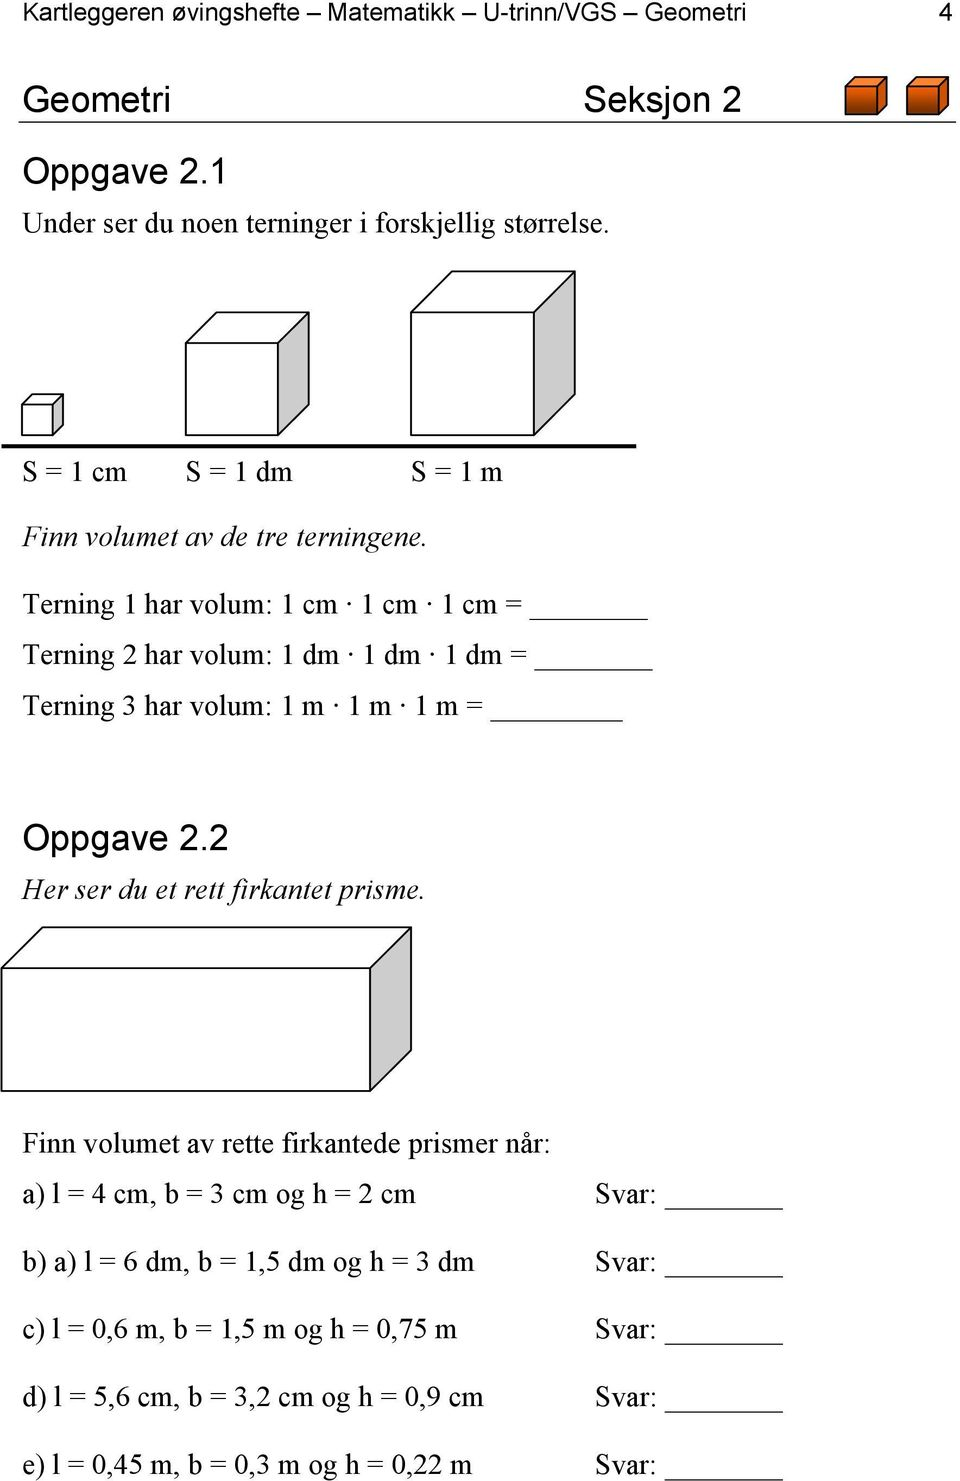 Terning 1 har volum: 1 cm 1 cm 1 cm = Terning 2 har volum: 1 dm 1 dm 1 dm = Terning 3 har volum: 1 m 1 m 1 m = Oppgave 2.